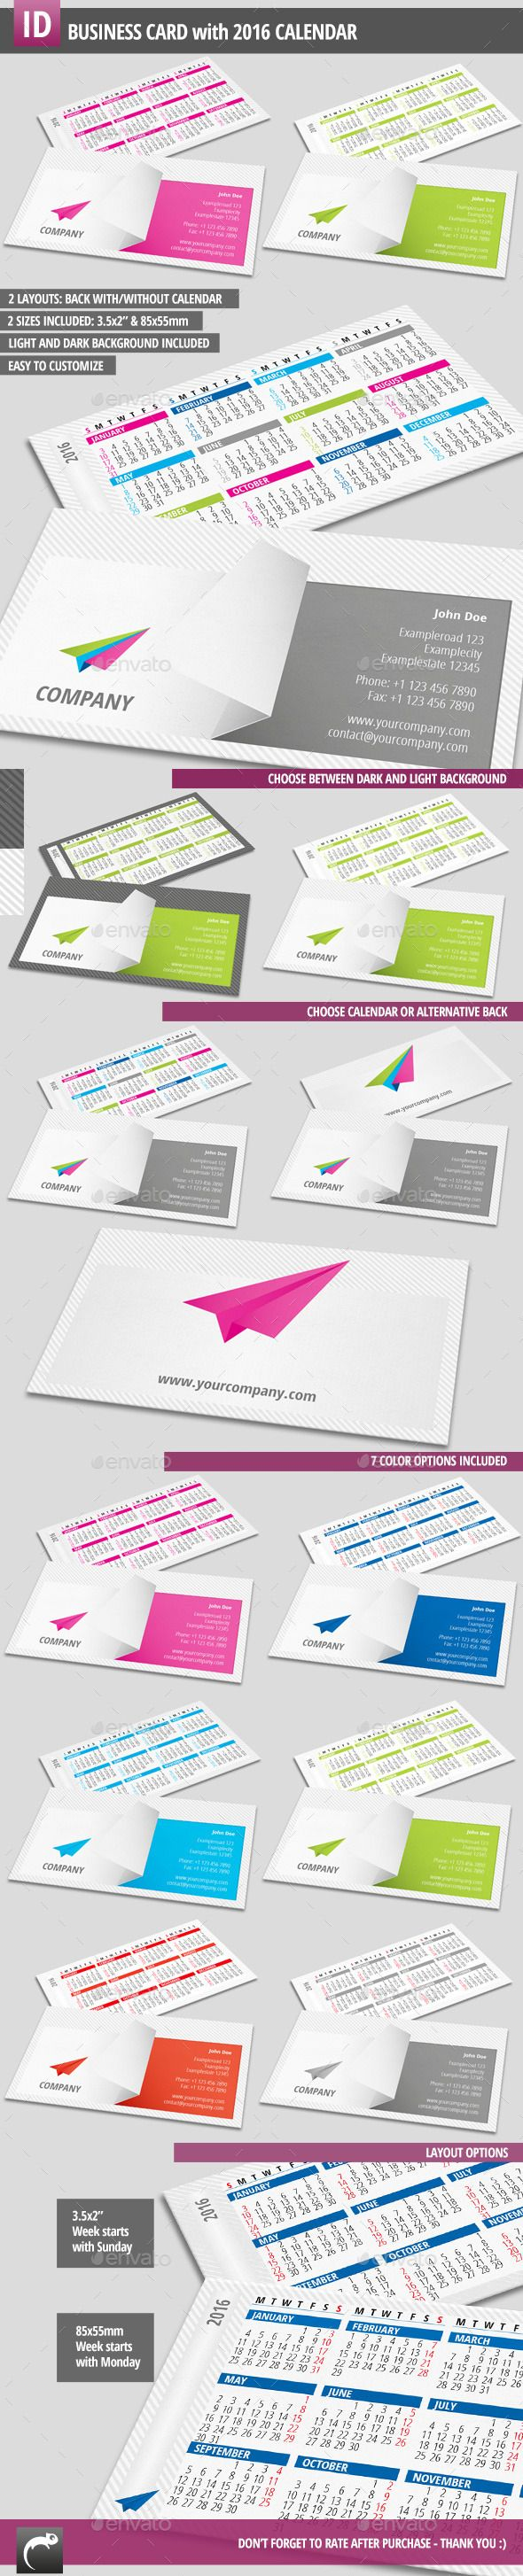 134 best calendar templates images on pinterest calendar calendar business card with 2016 calendar template indesign indd download here http wajeb Choice Image